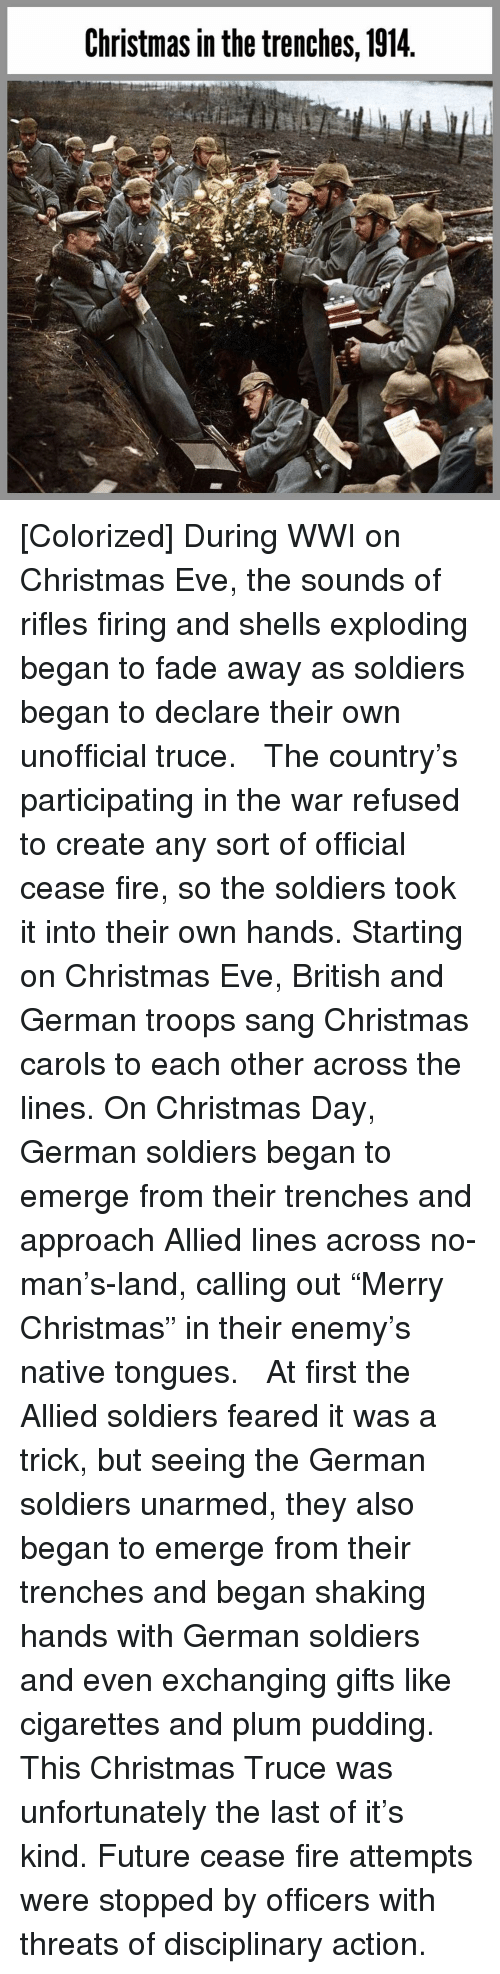 """Christmas, Fire, and Future: Christmas in the trenches, 1914 [Colorized] During WWI on Christmas Eve, the sounds of rifles firing and shells exploding began to fade away as soldiers began to declare their own unofficial truce.   The country's participating in the war refused to create any sort of official cease fire, so the soldiers took it into their own hands. Starting on Christmas Eve, British and German troops sang Christmas carols to each other across the lines. On Christmas Day, German soldiers began to emerge from their trenches and approach Allied lines across no-man's-land, calling out """"Merry Christmas"""" in their enemy's native tongues.   At first the Allied soldiers feared it was a trick, but seeing the German soldiers unarmed, they also began to emerge from their trenches and began shaking hands with German soldiers and even exchanging gifts like cigarettes and plum pudding.   This Christmas Truce was unfortunately the last of it's kind. Future cease fire attempts were stopped by officers with threats of disciplinary action."""